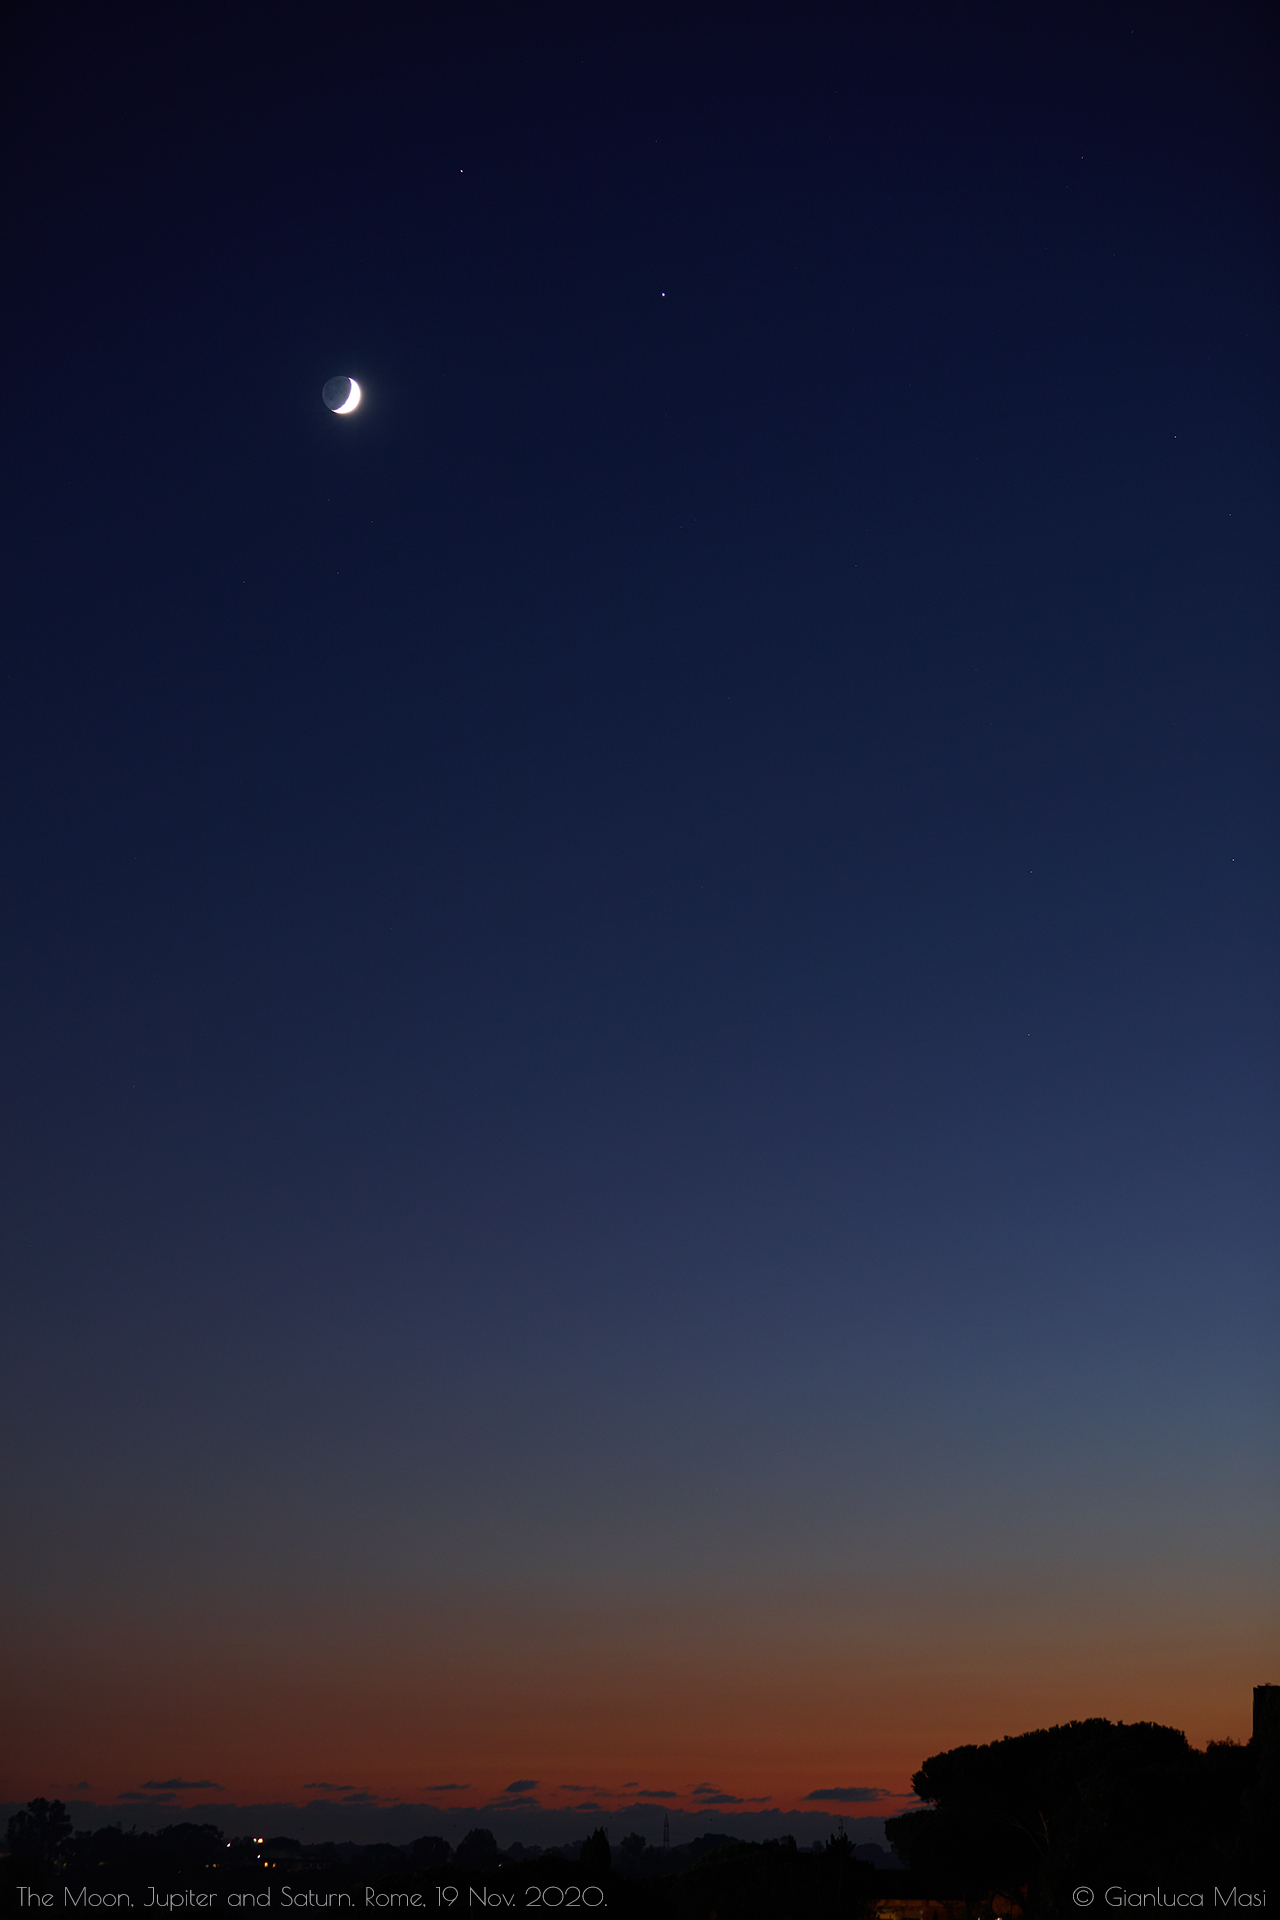 The Moon, Jupiter and Saturn in the glorious colors of sunset. 19 Nov. 2020.